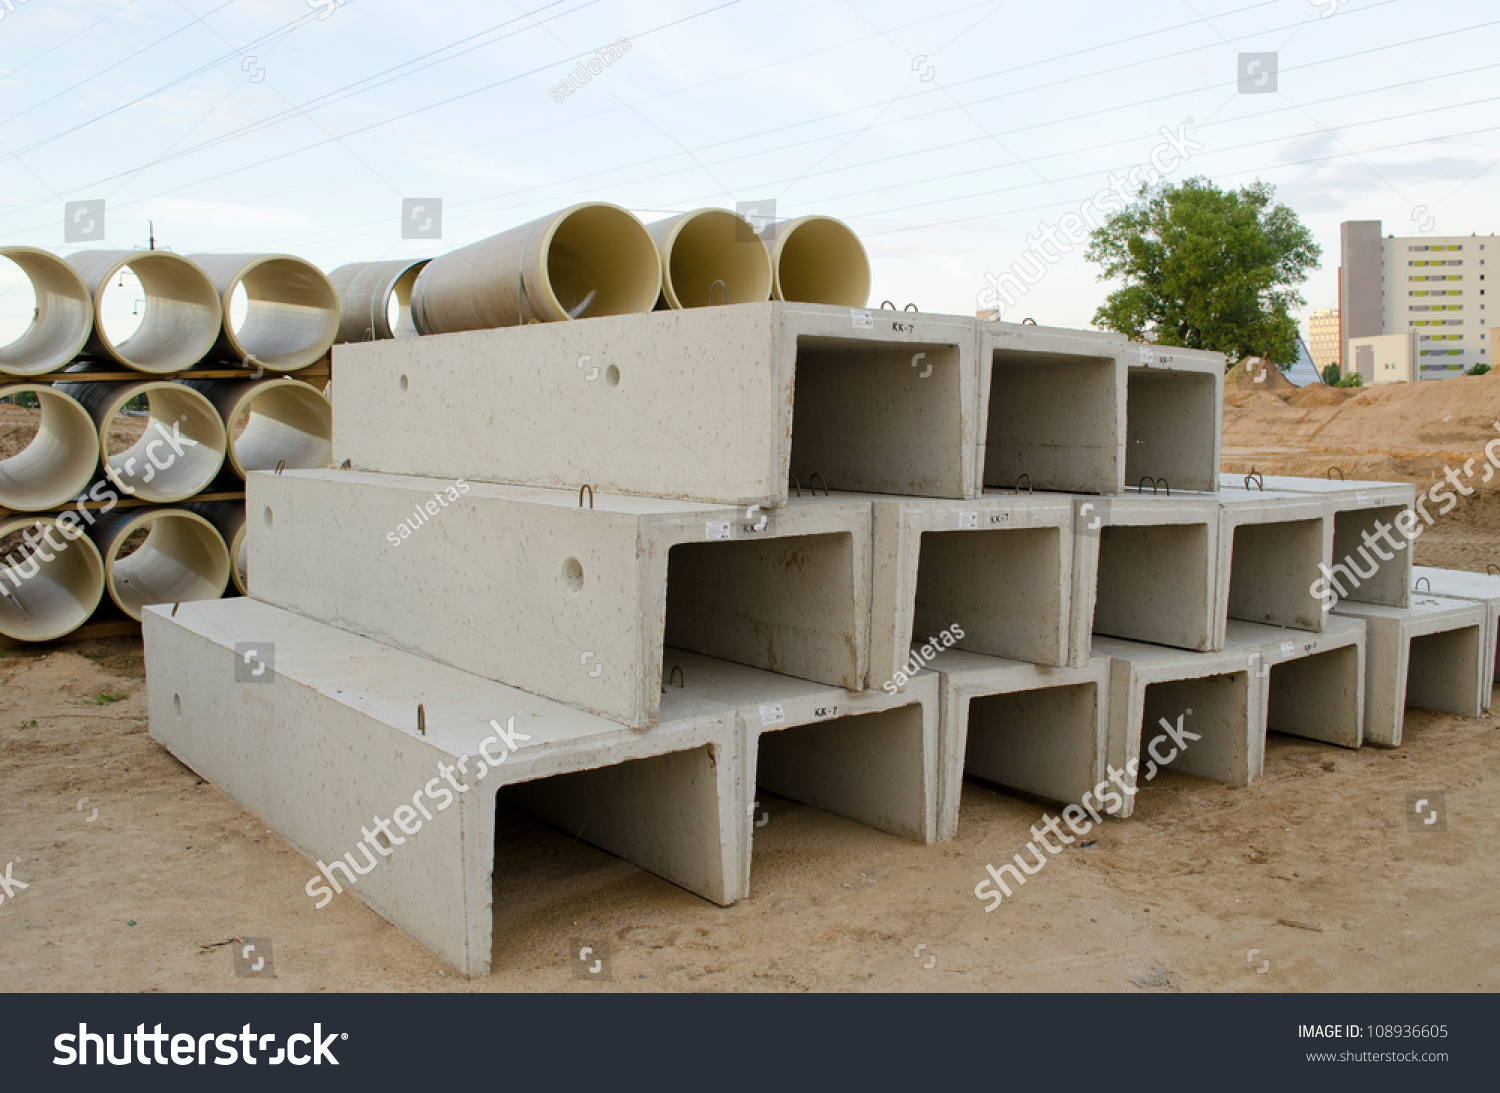 Highway Construction Materials : Materials used road construction works concrete stock